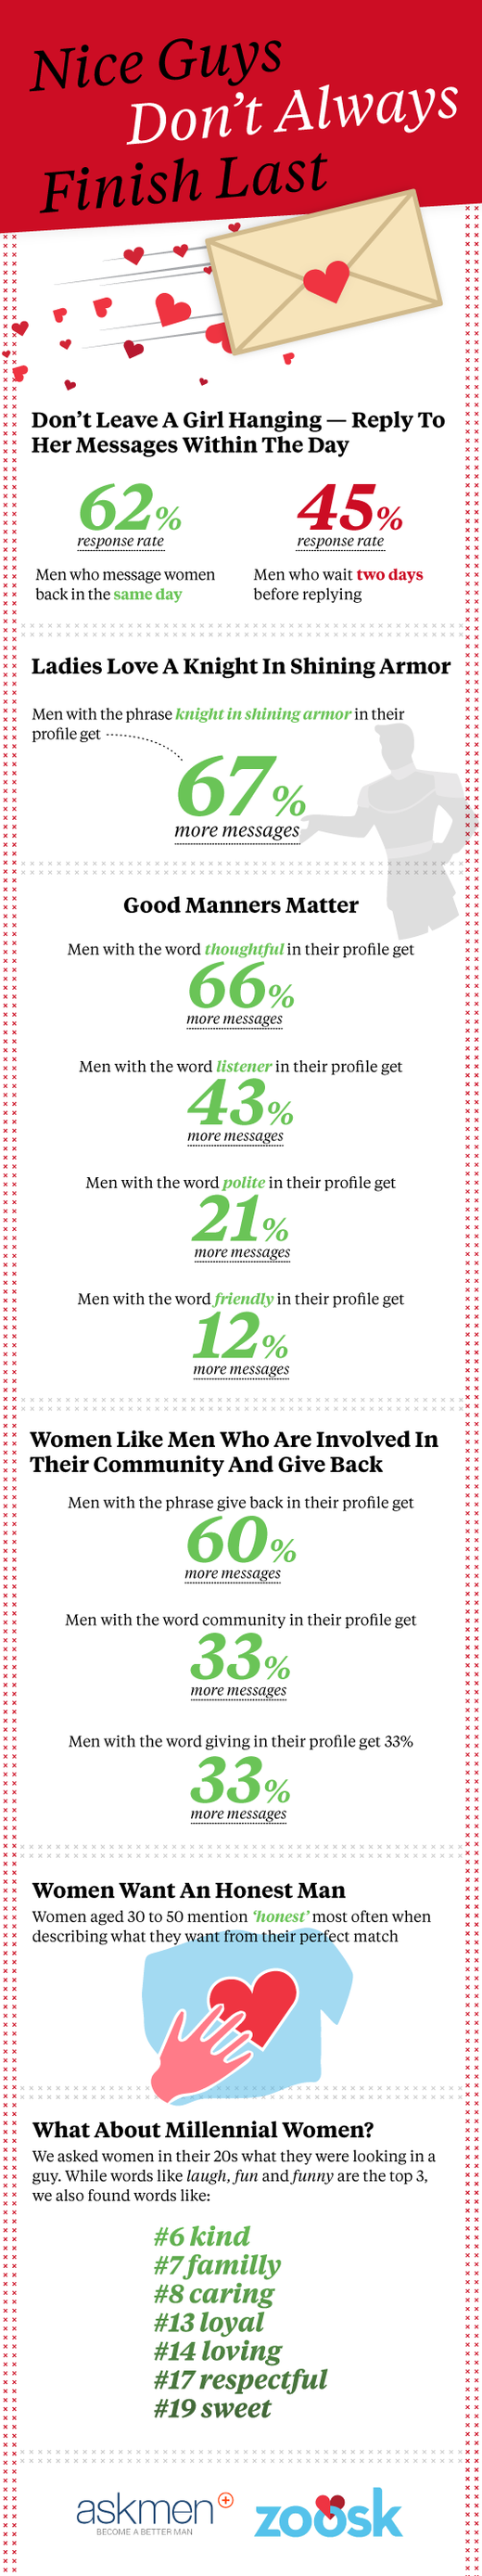 An infographic about being a nice guy while online dating.